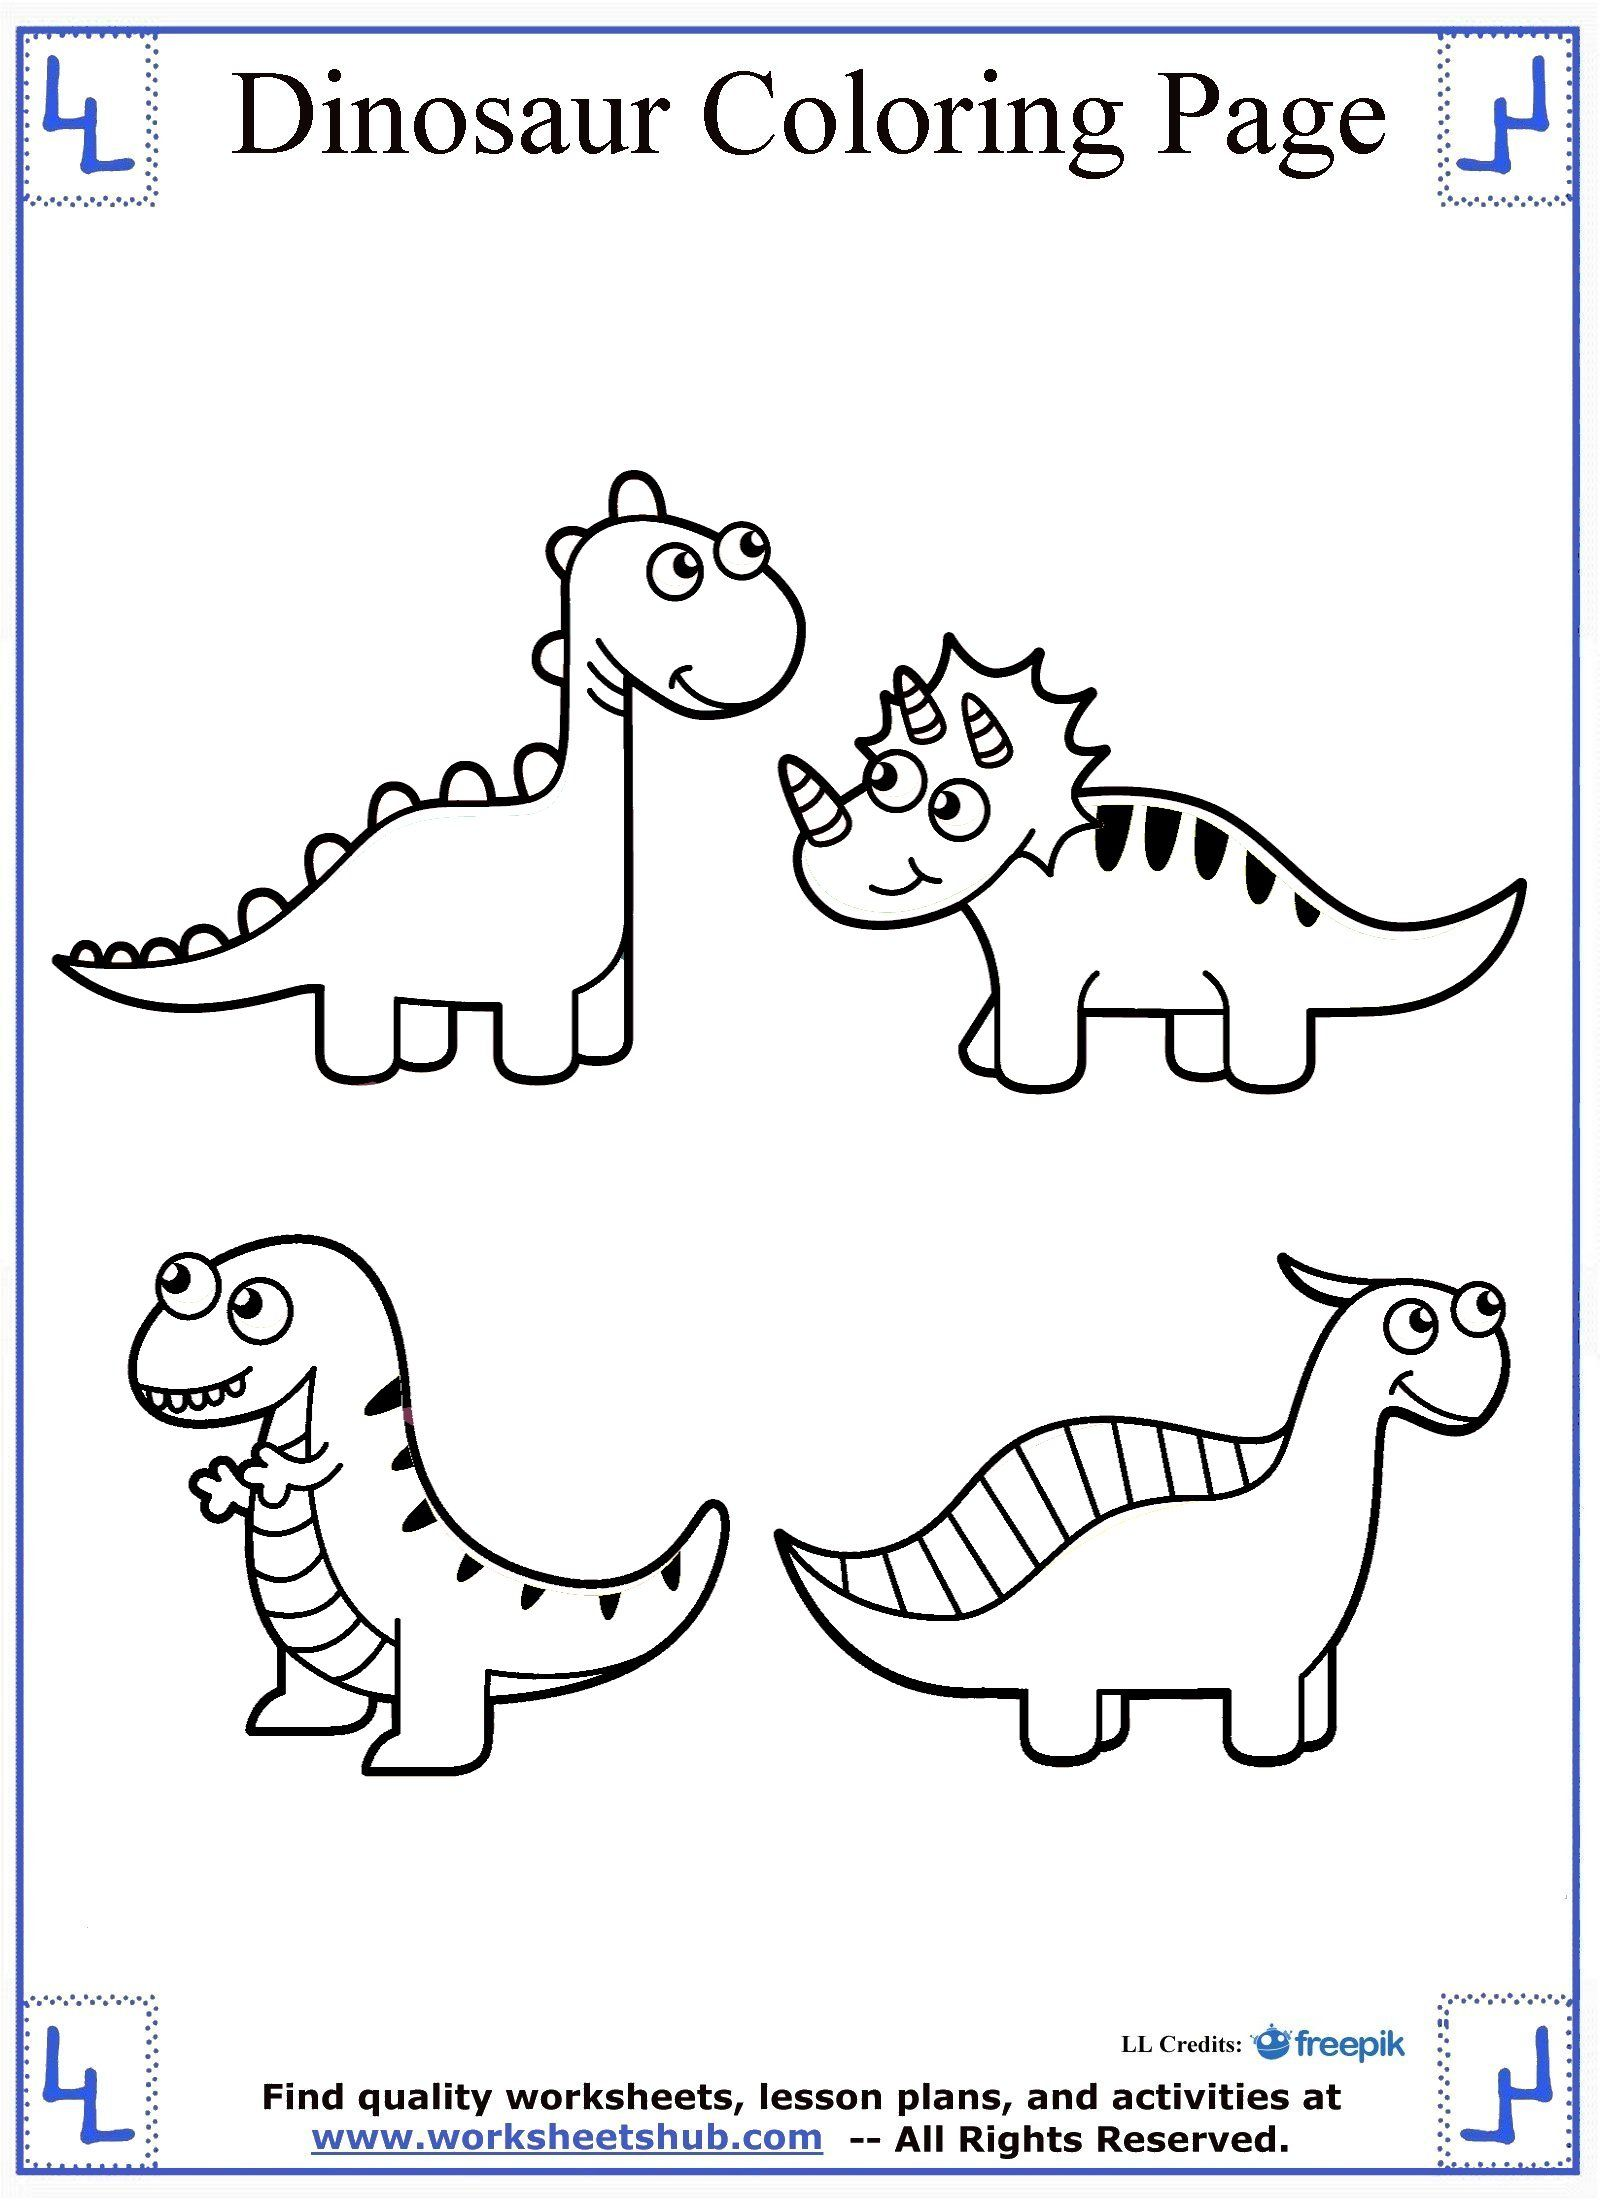 Dinosaur Coloring Page Cute | Dinosaur Coloring Pages